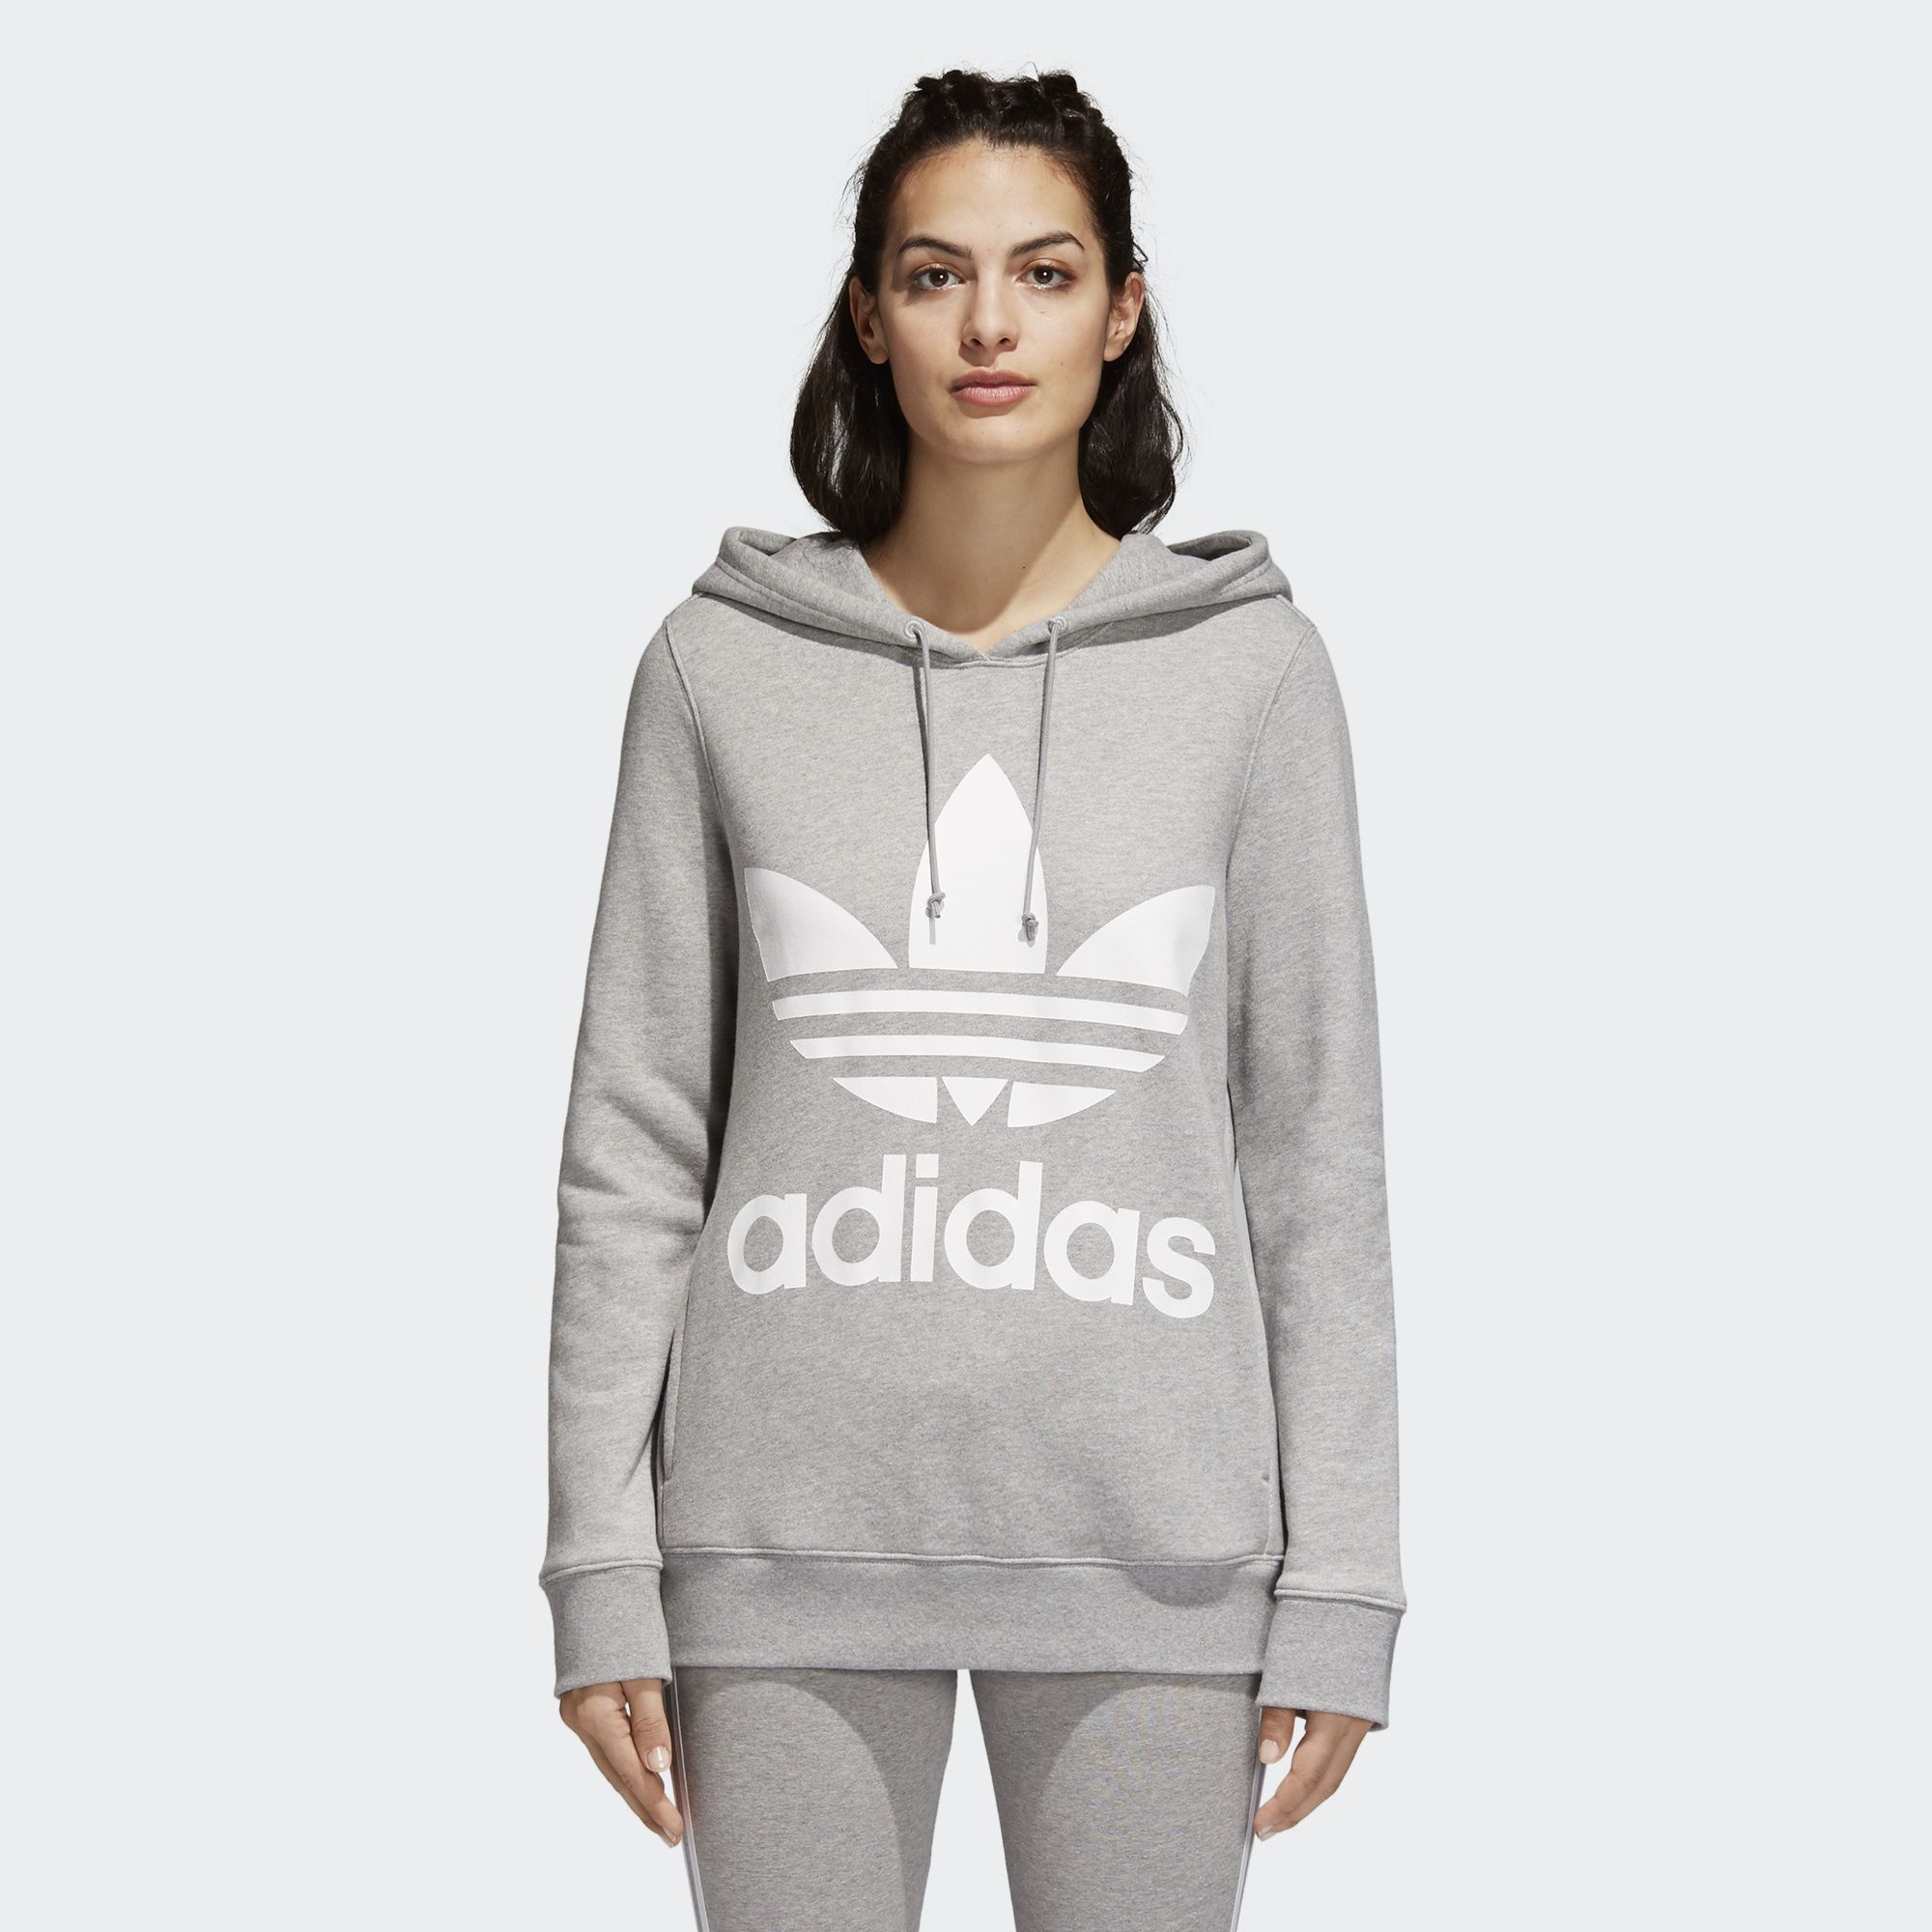 Predownload: The Trefoil Hoodie Is New For Lifestyle On Adidas Com Scroll Through The Pictures Above To See Hoodies Womens Adidas Trefoil Hoodie Women Hoodies Sweatshirts [ 2000 x 2000 Pixel ]